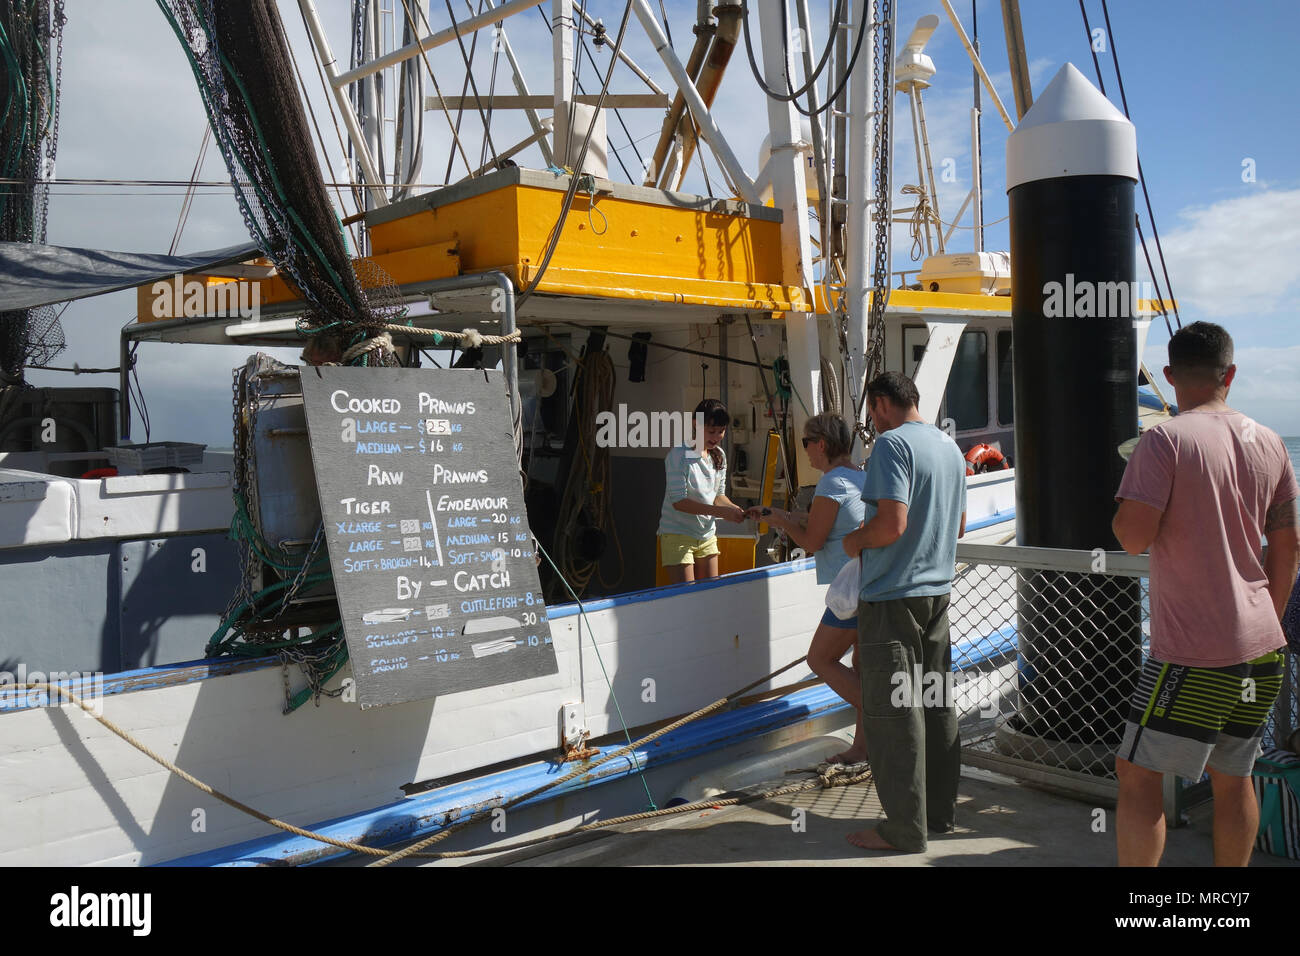 People buying prawns from trawler at wharf, Port Douglas, Queensland, Australia. No MR or PR - Stock Image